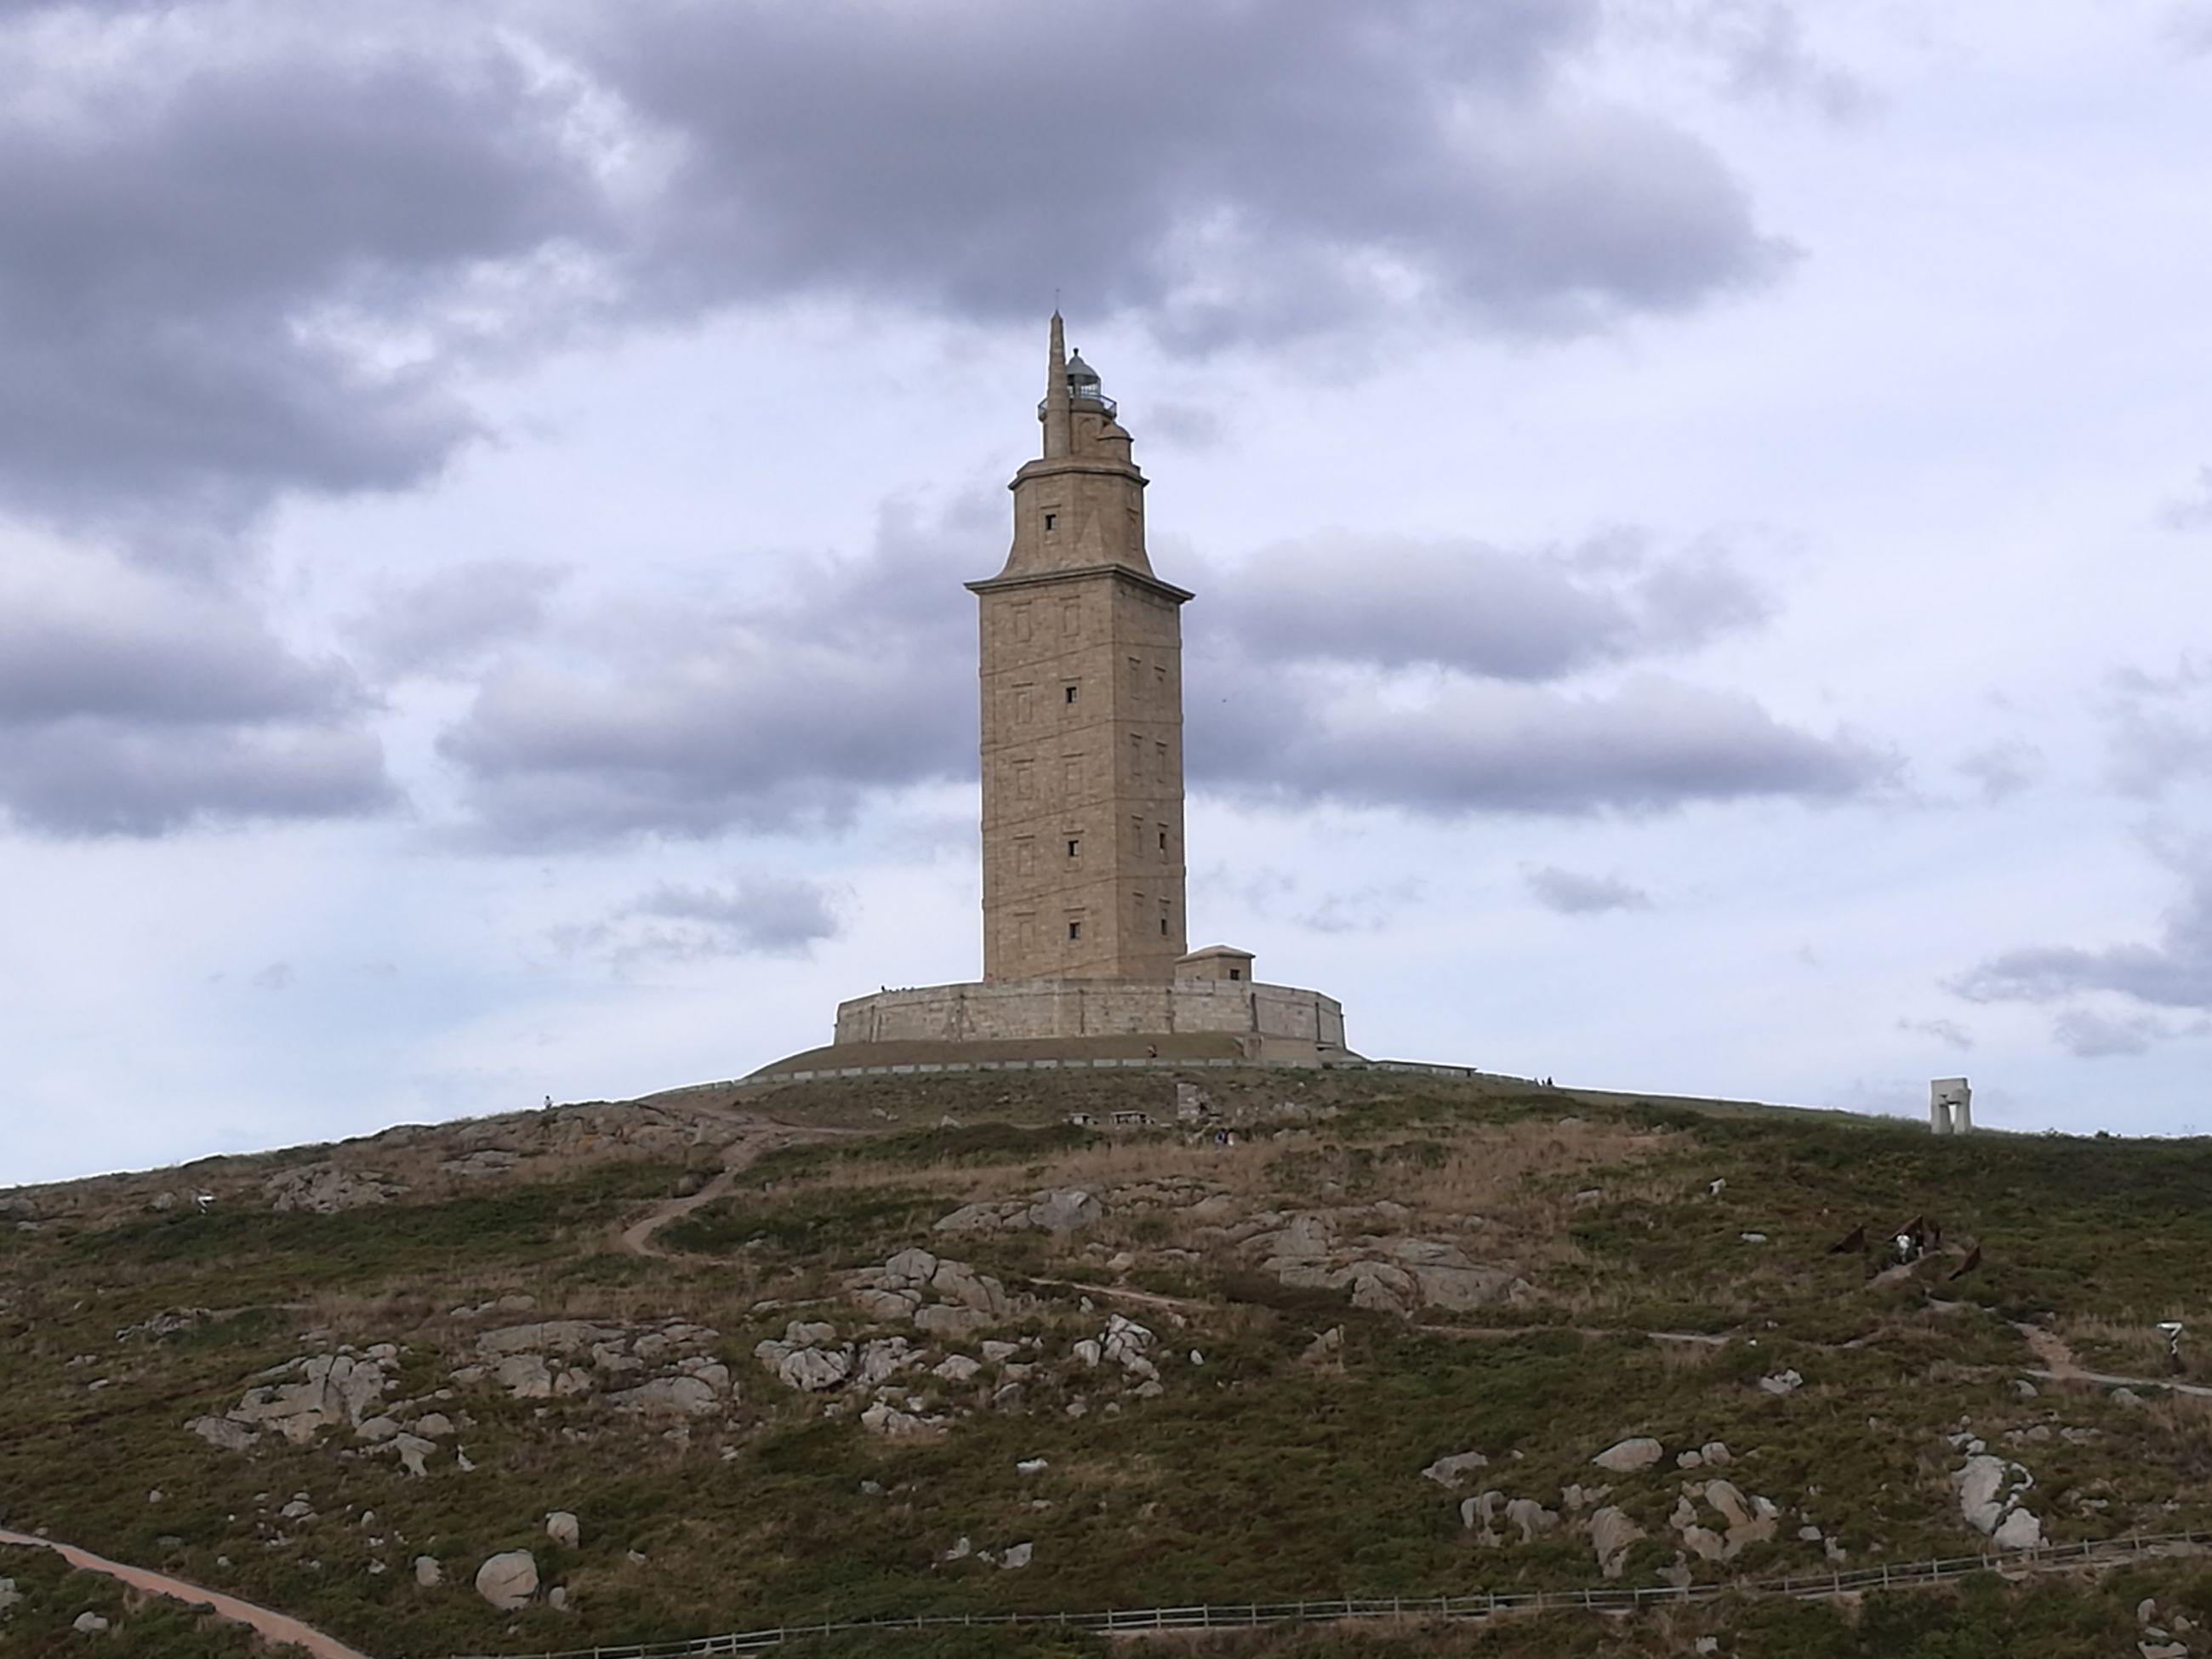 architecture, built structure, protection, lighthouse, direction, guidance, tower, cloud - sky, safety, building exterior, sky, history, the past, cloudy, cloud, travel destinations, outdoors, tranquility, tourism, tall, tall - high, stone material, tranquil scene, nature, scenics, architectural column, non-urban scene, no people, storm cloud